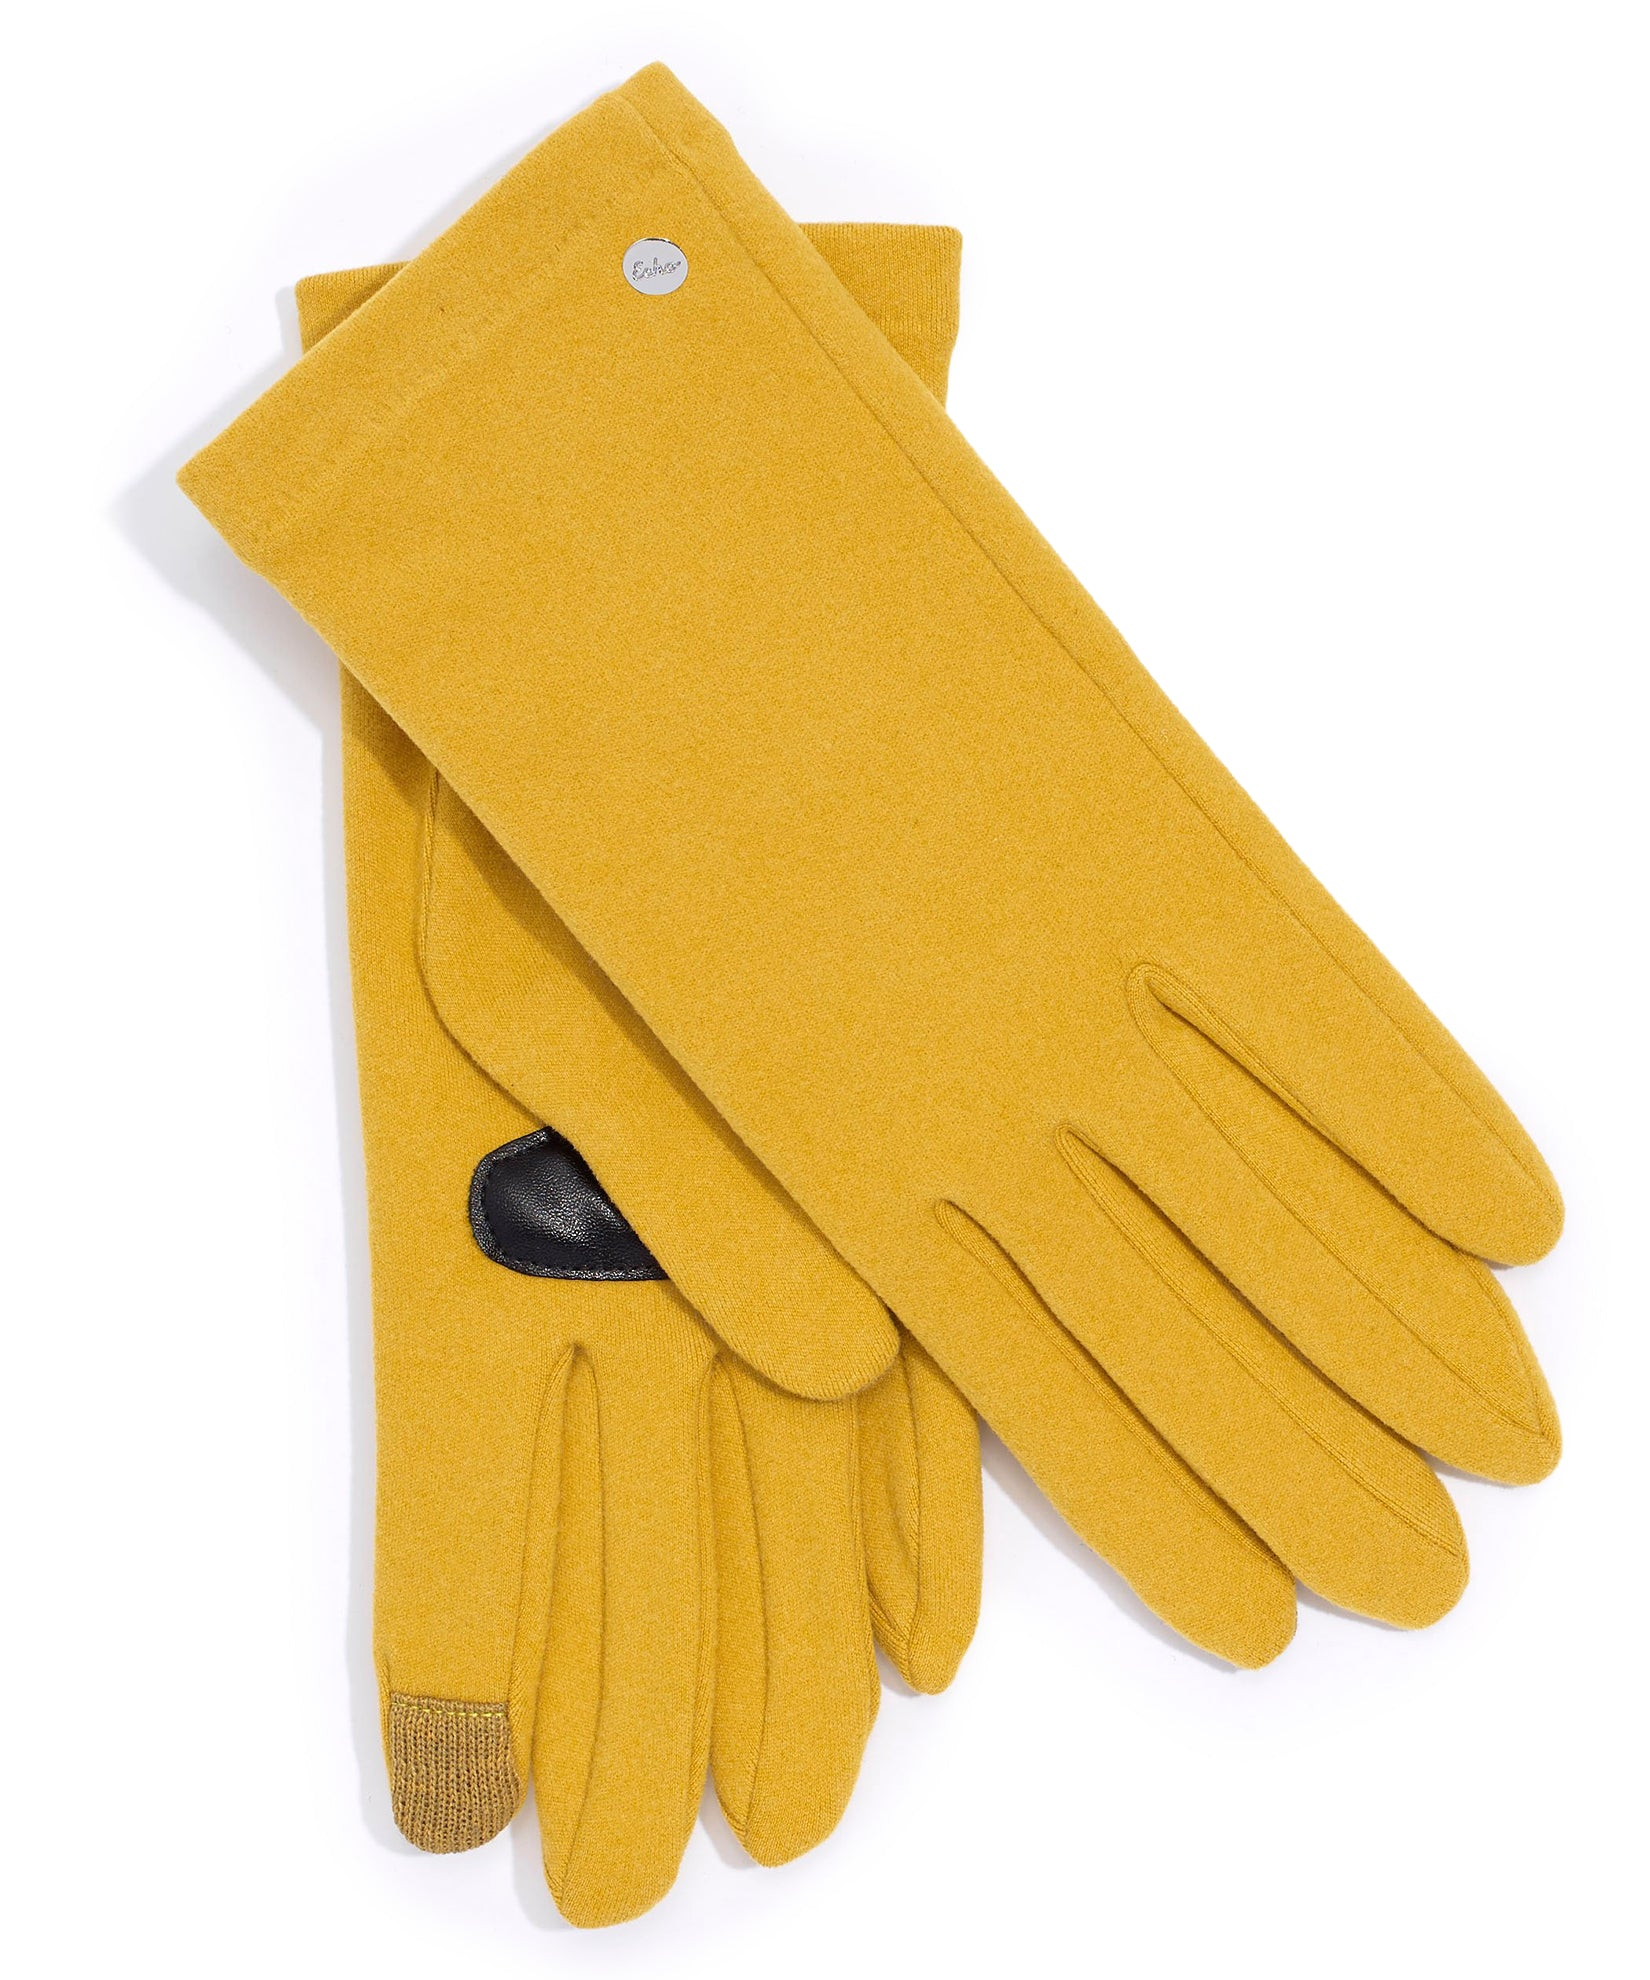 Goldenrod - Comfort Stretch Touch Glove